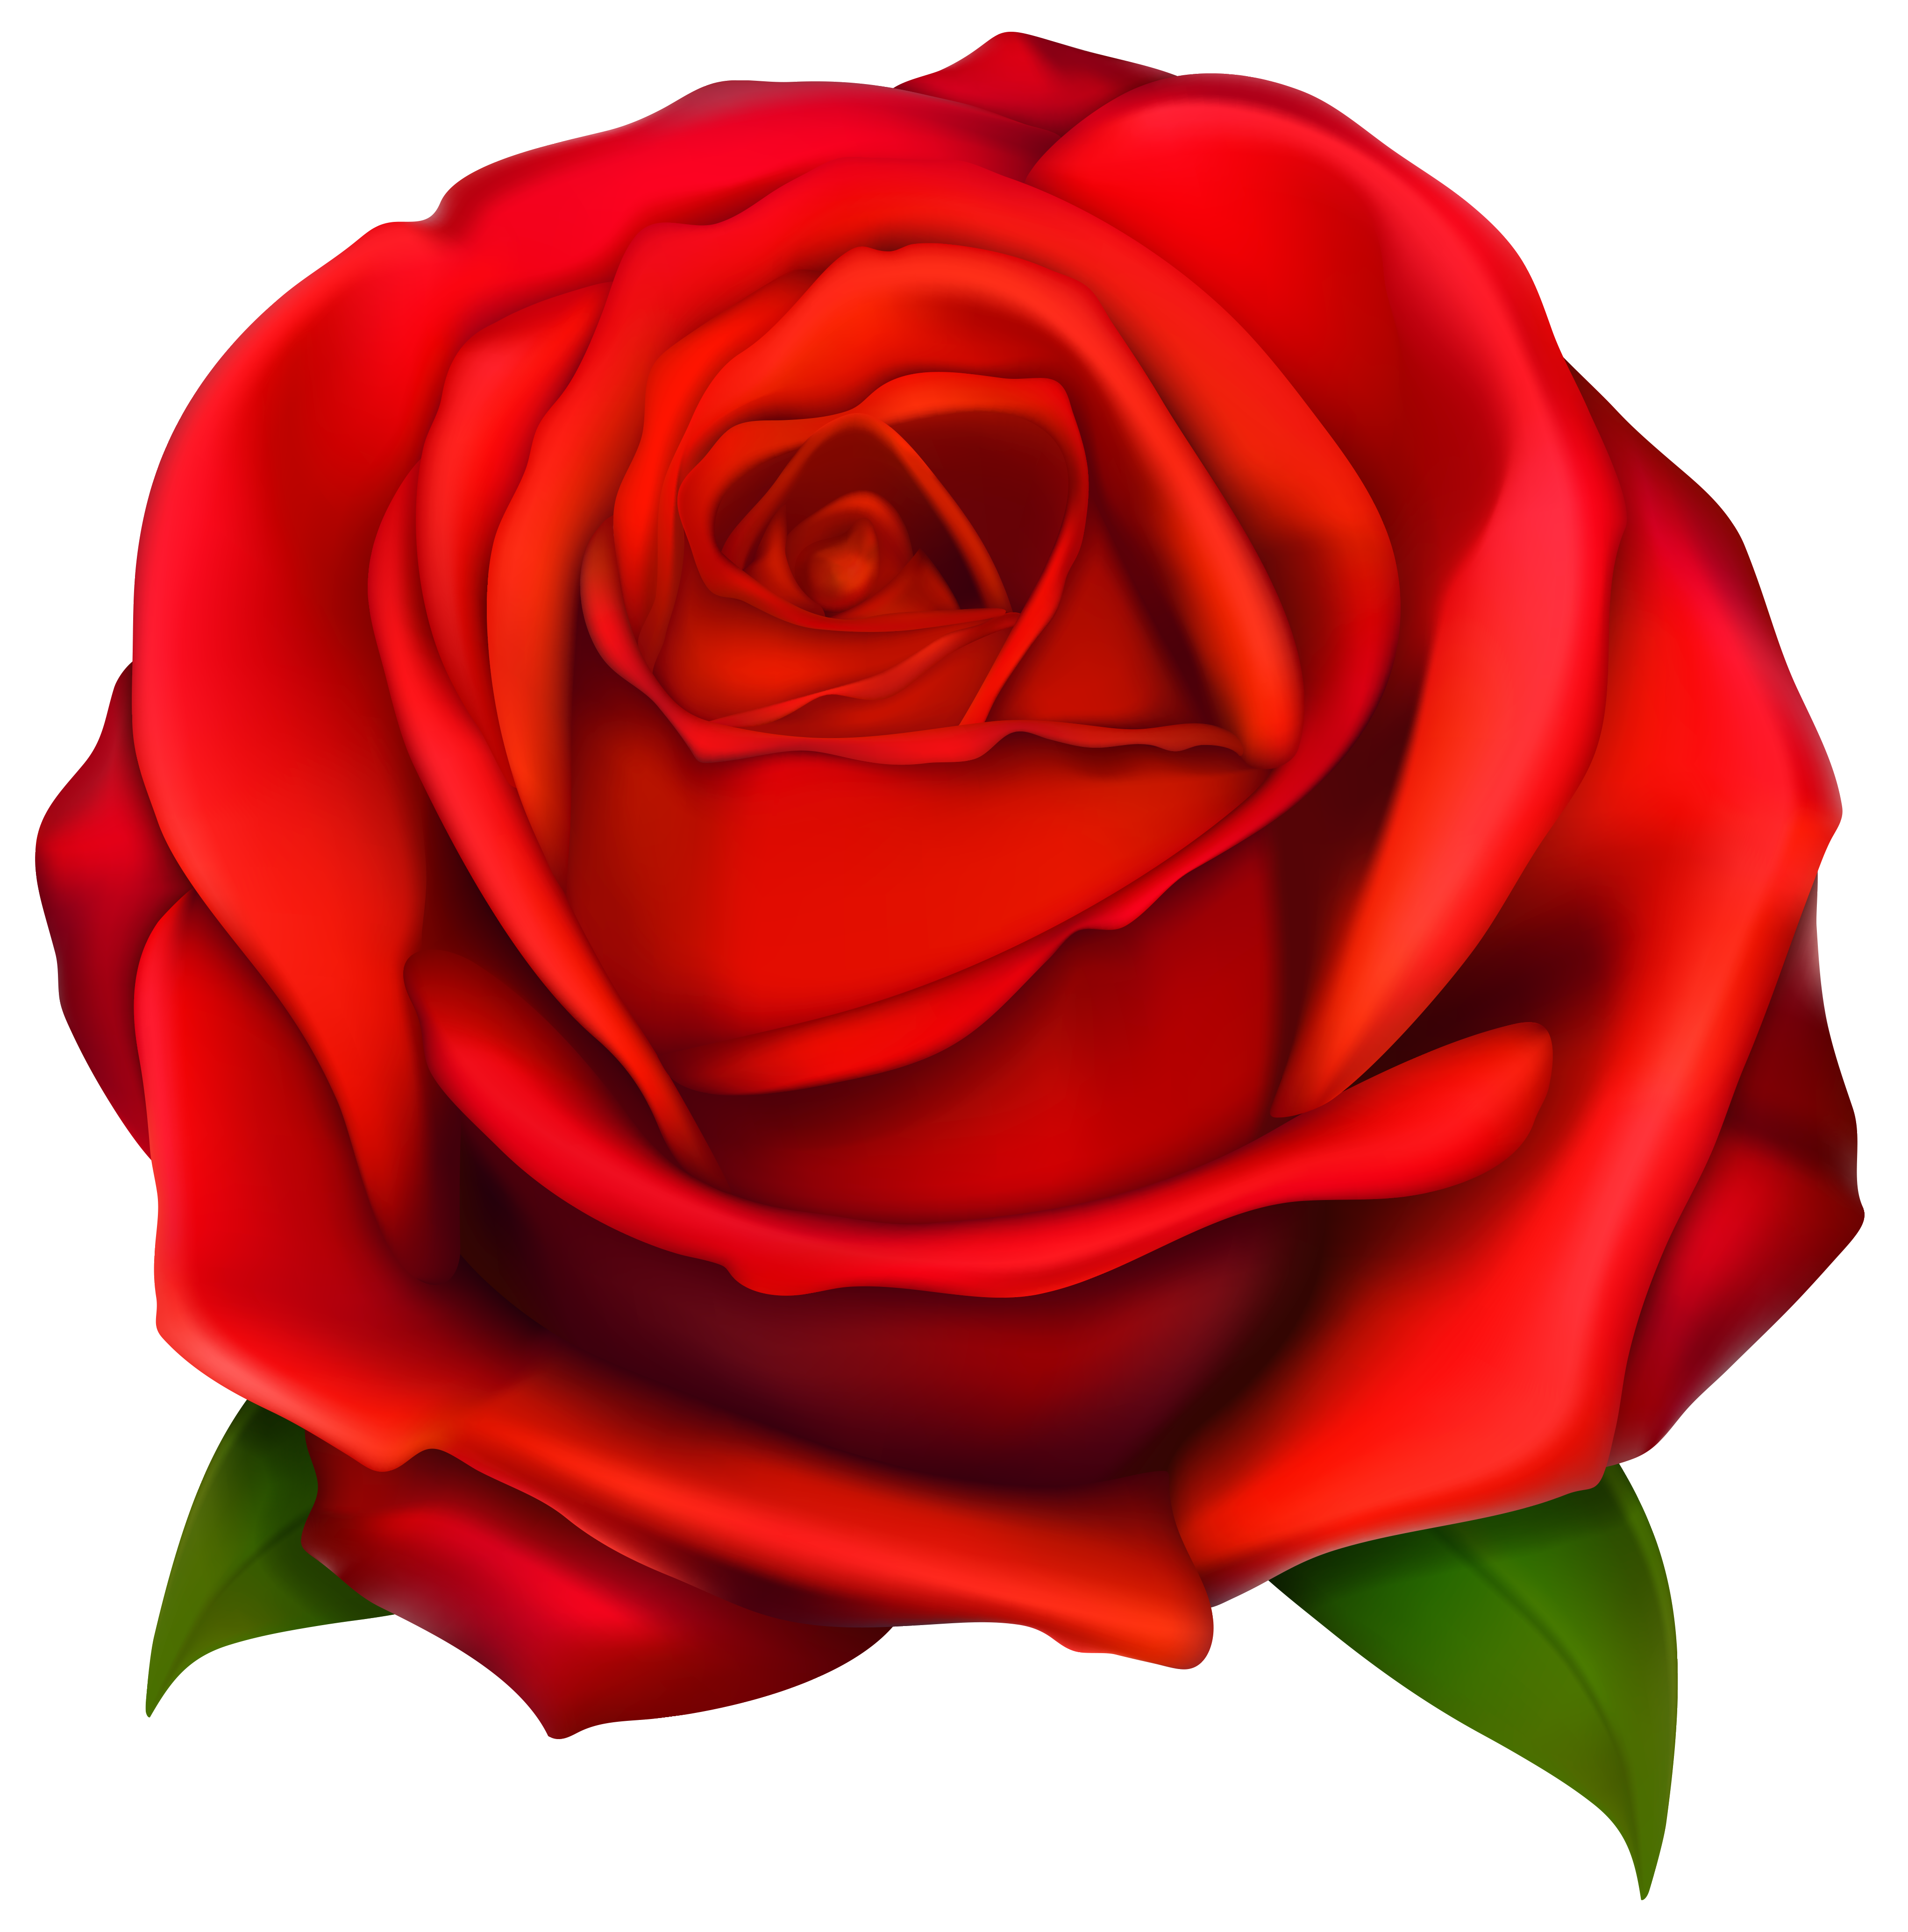 png freeuse download Transparent Red Rose PNG Clipart